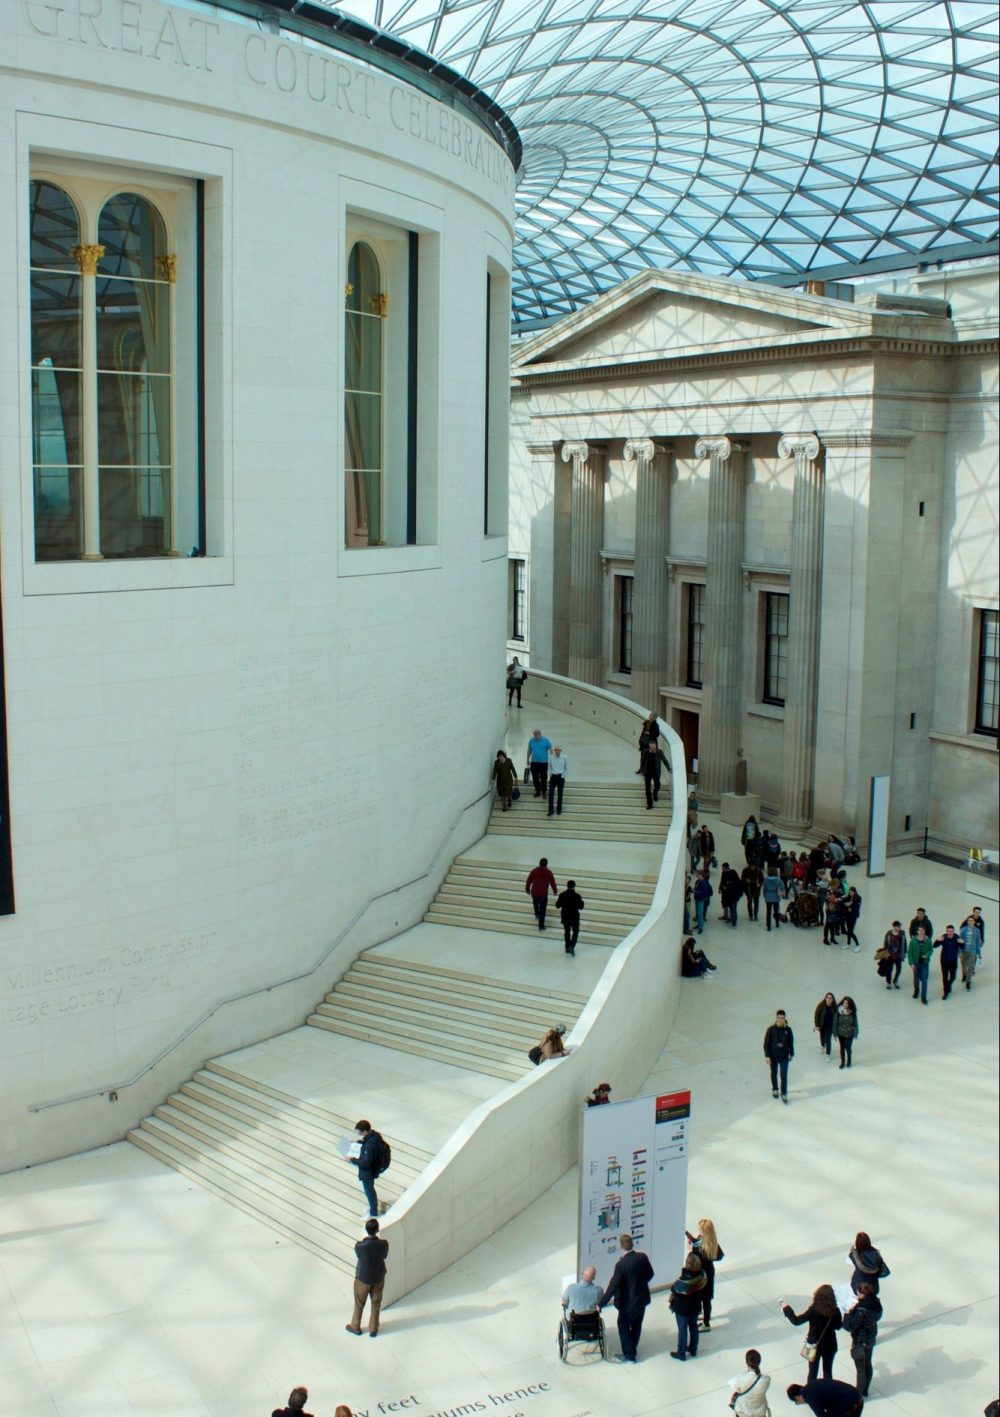 Looking down on Tourists in British museum in London